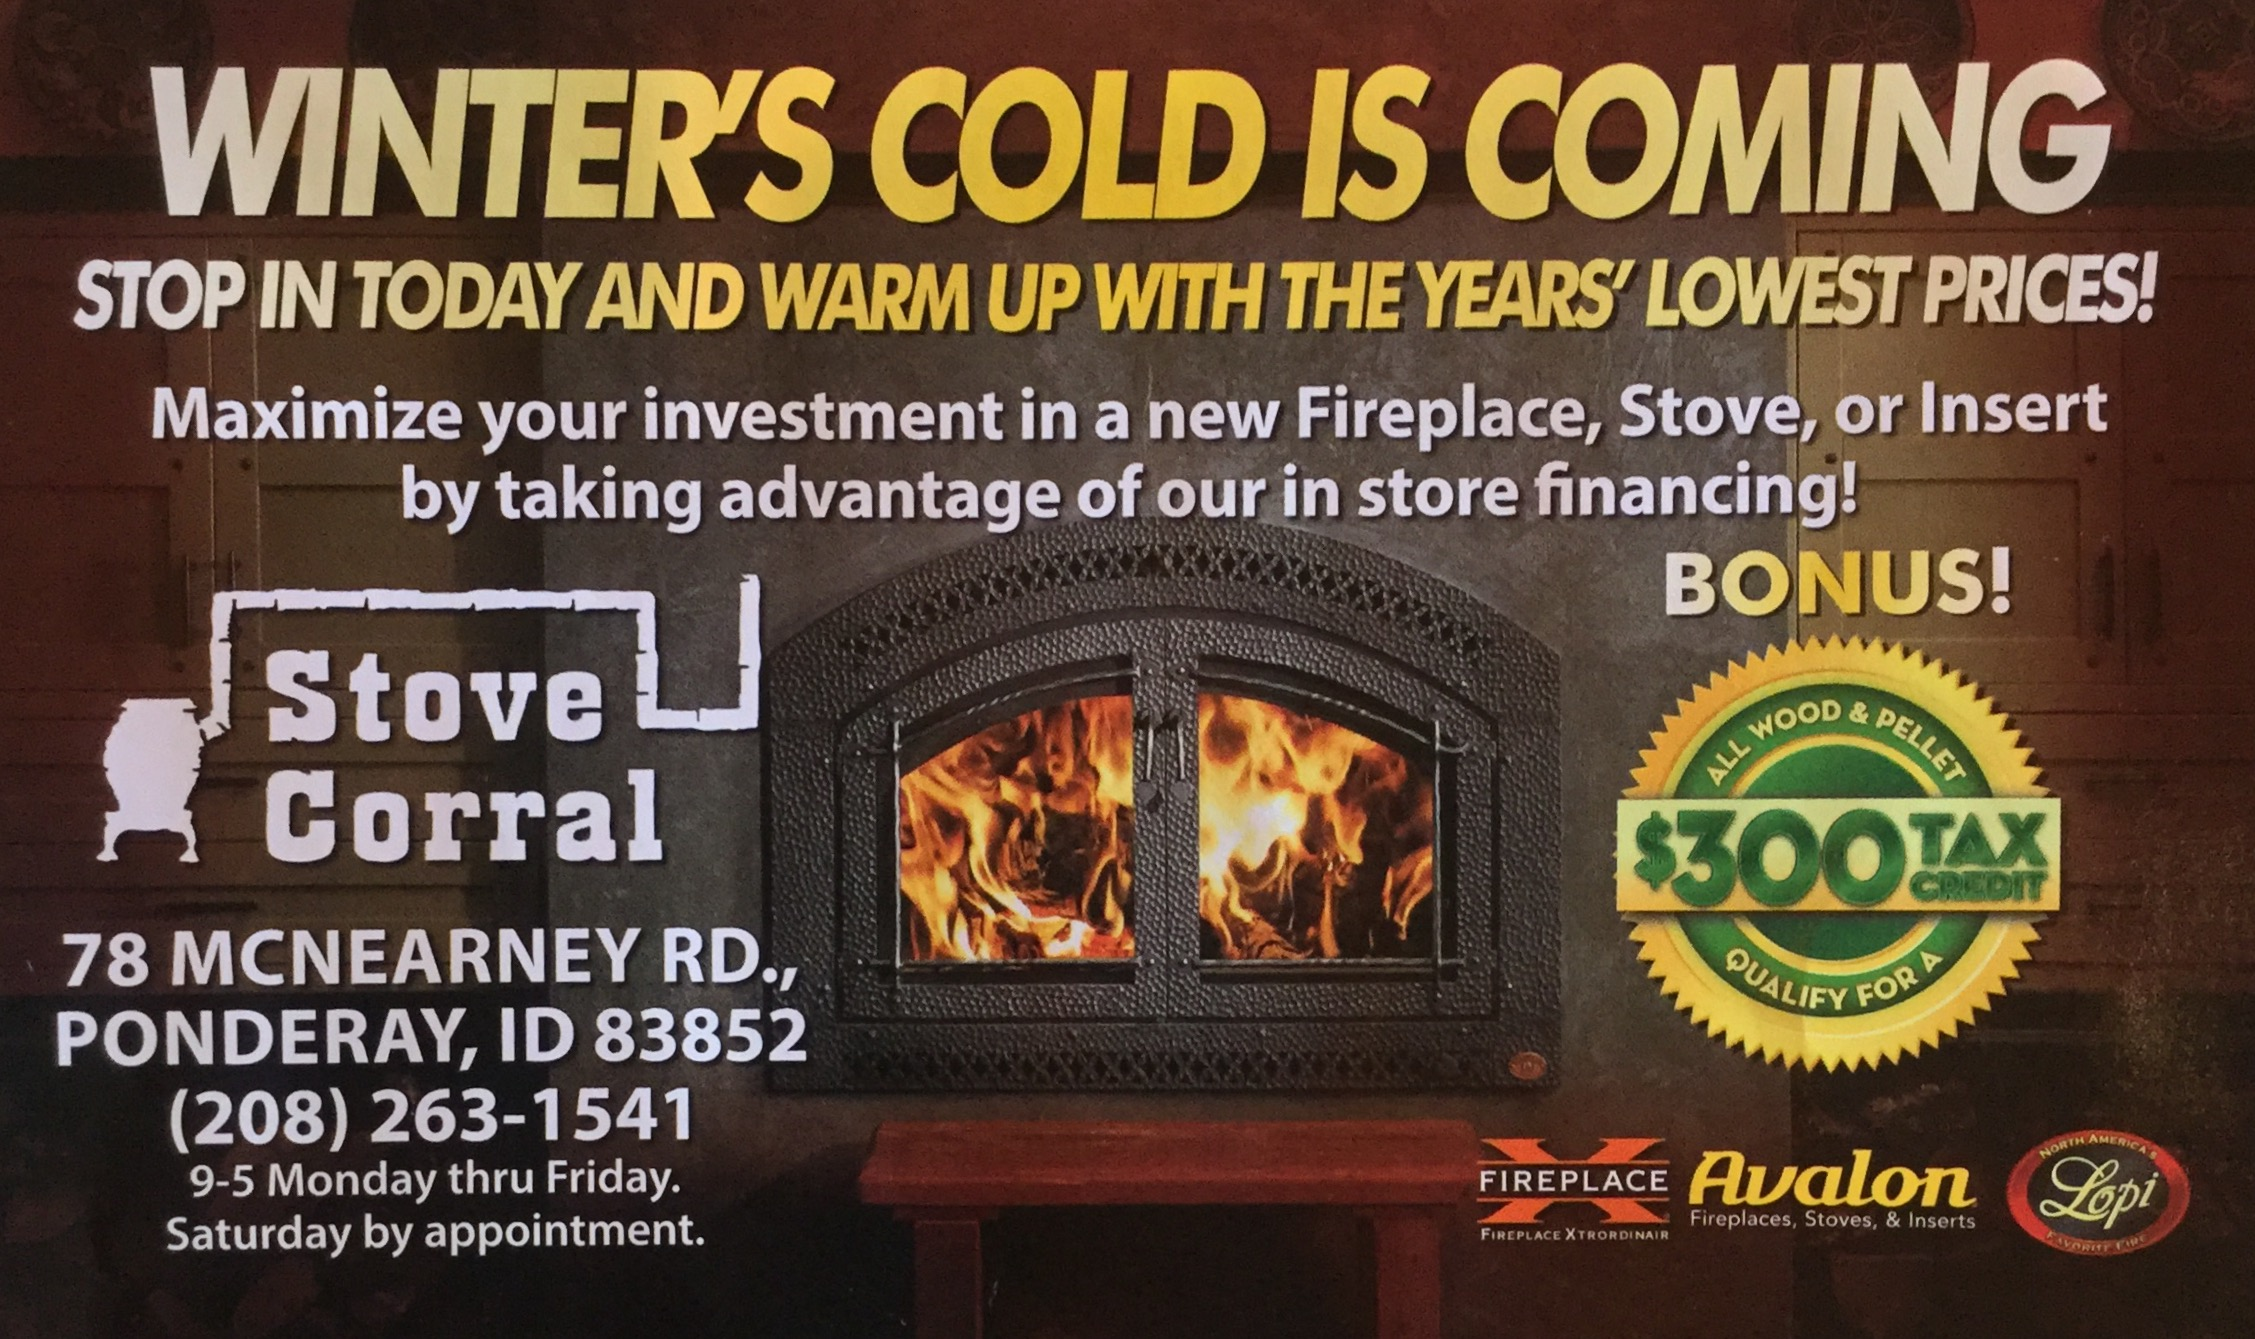 stove corral sandpoint idaho dealer blaze king lopi fpx avalon